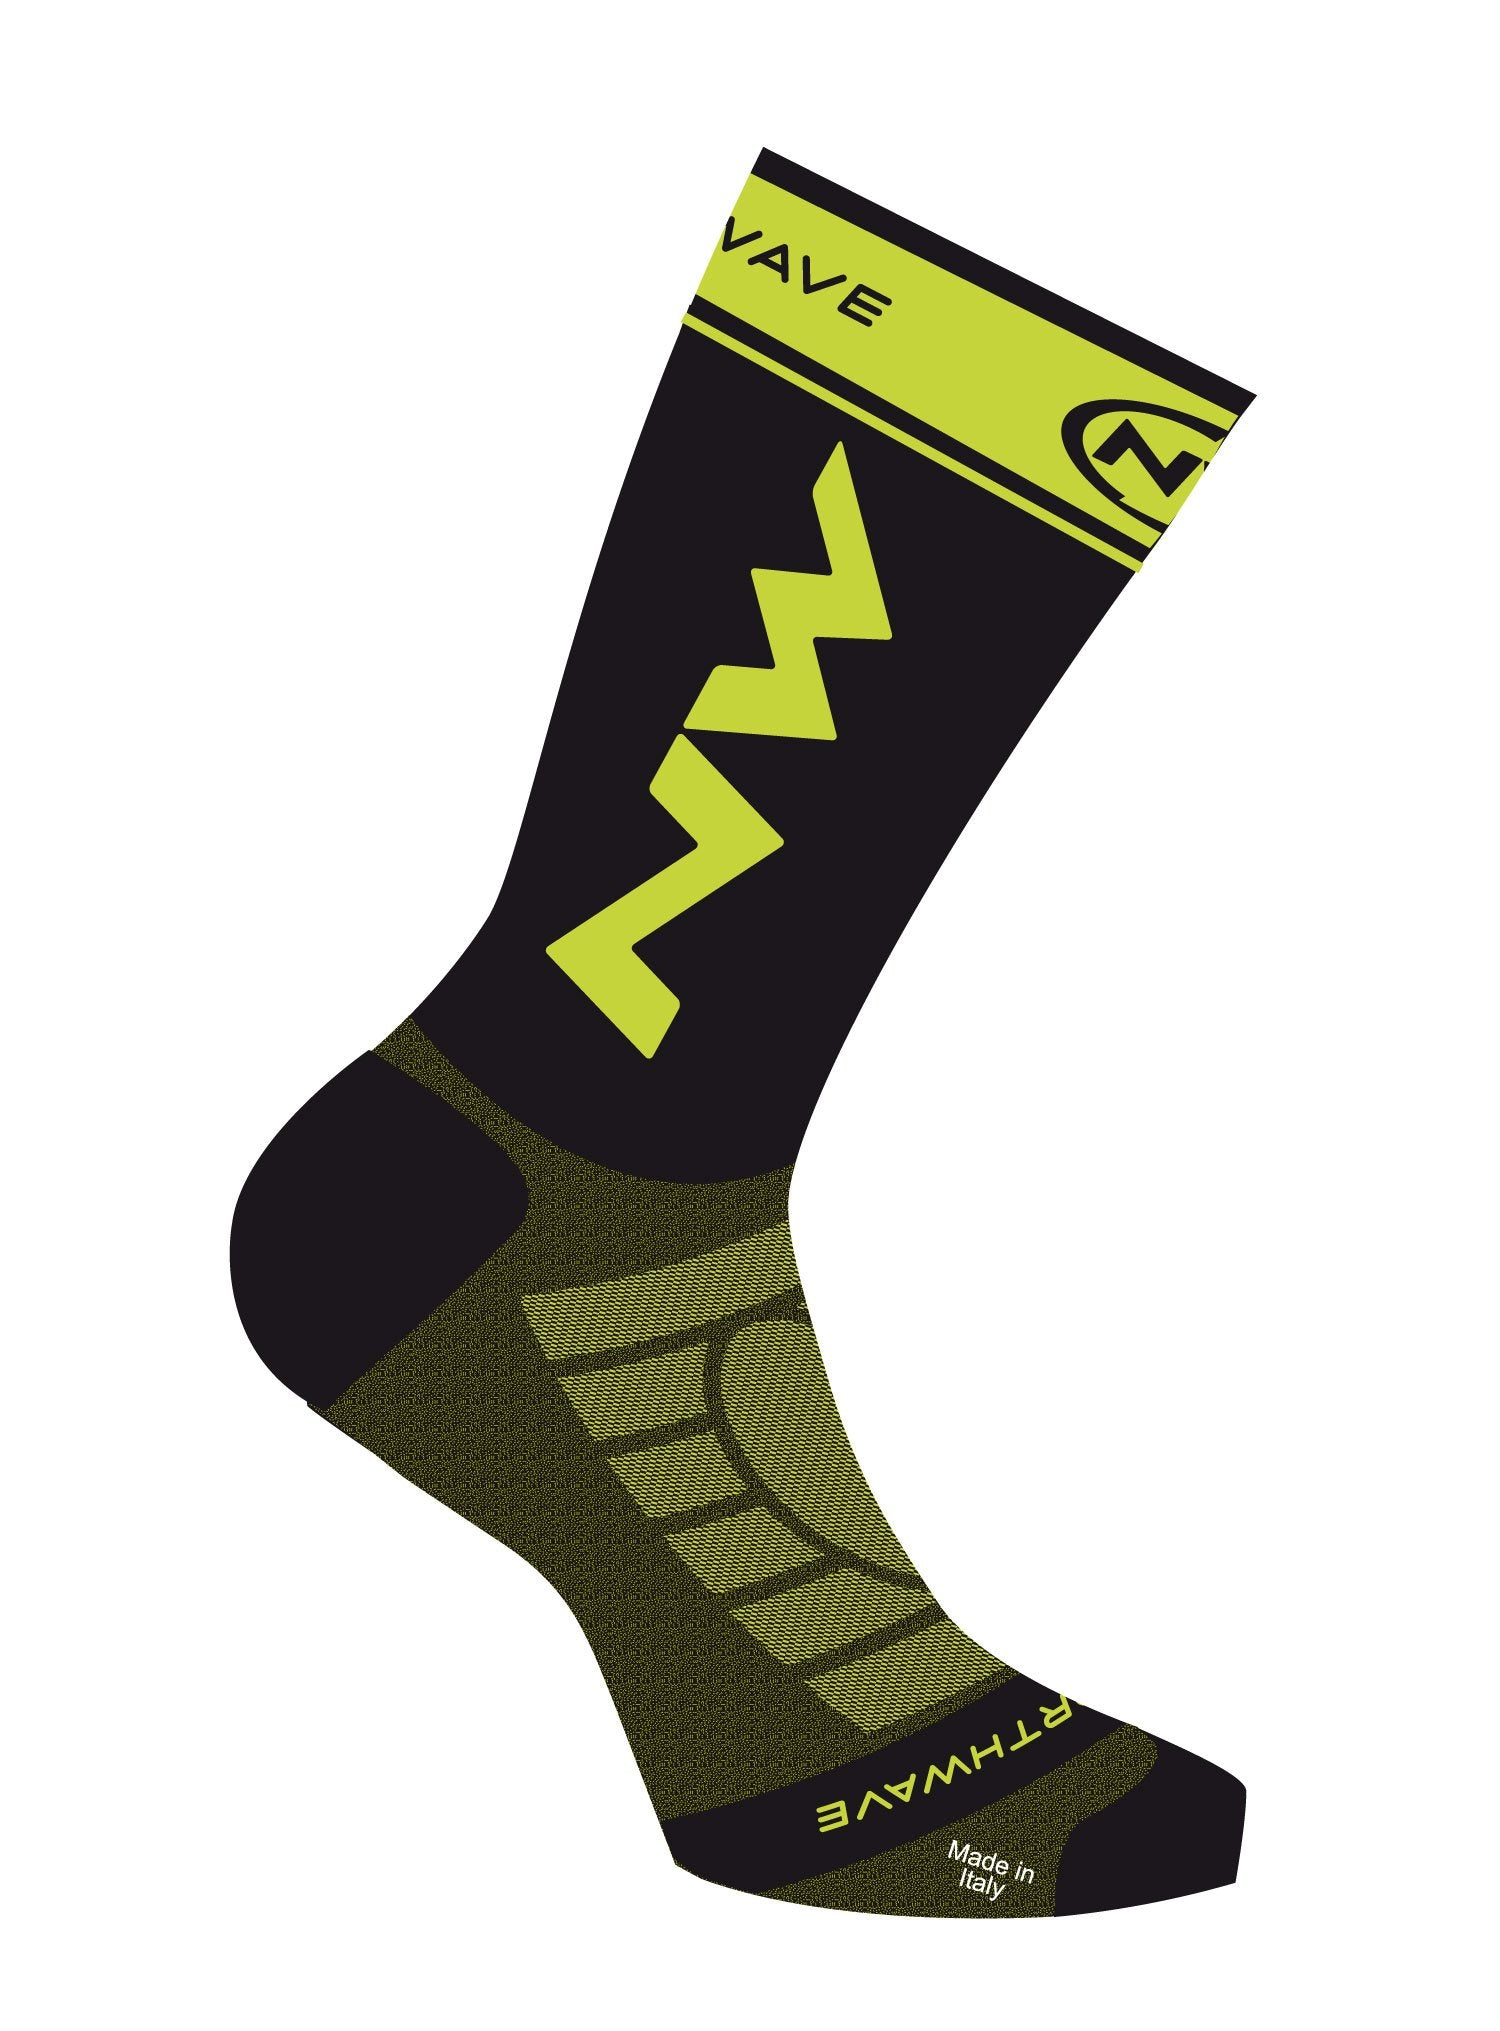 Northwave Extreme Light Pro Cycling Socks -Black-Lime Fluo - Cyclop.in